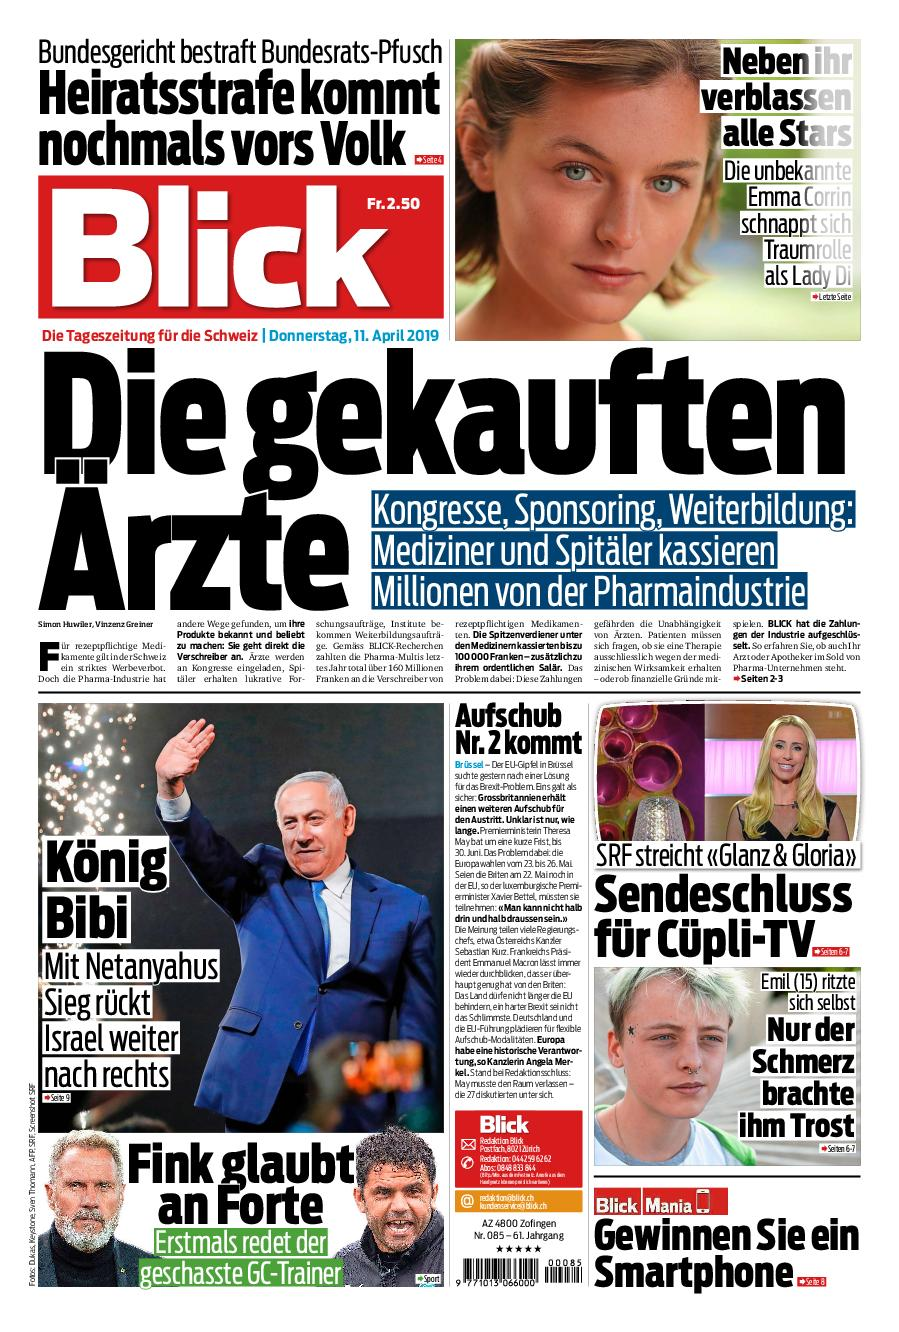 Blick 11 April 2019 Avaxhome